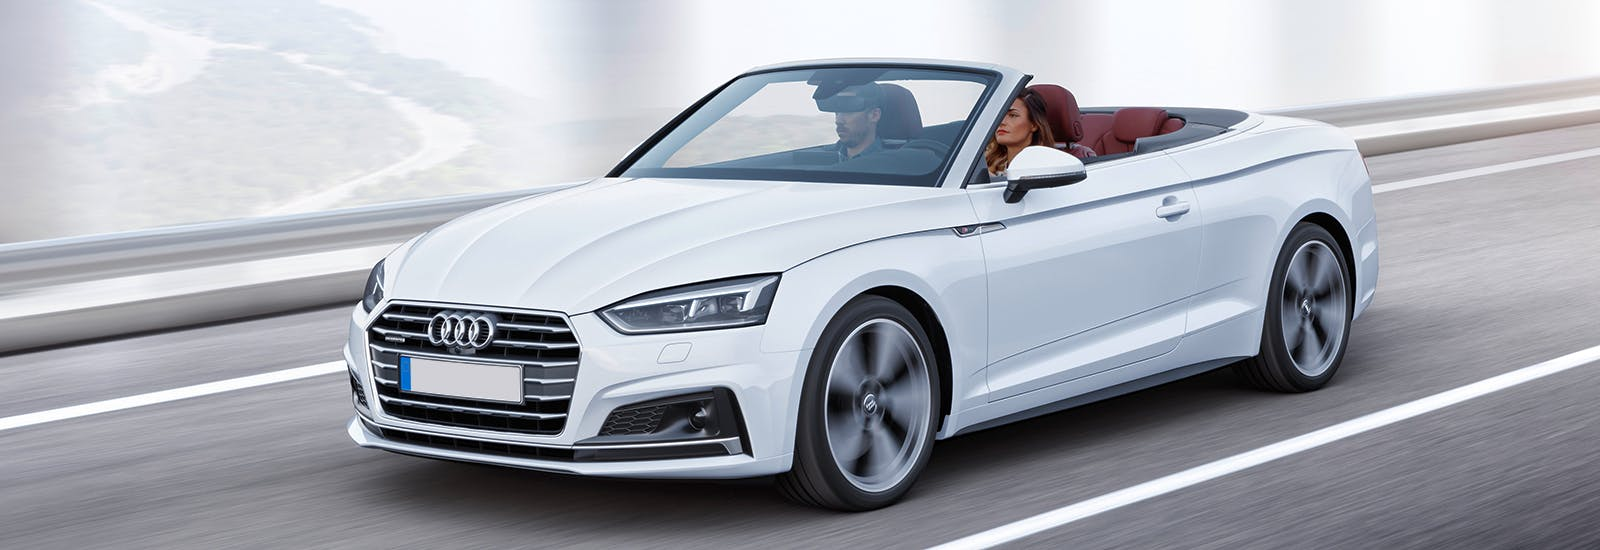 audi new car release datesUpcoming car release dates  cars coming soon  carwow